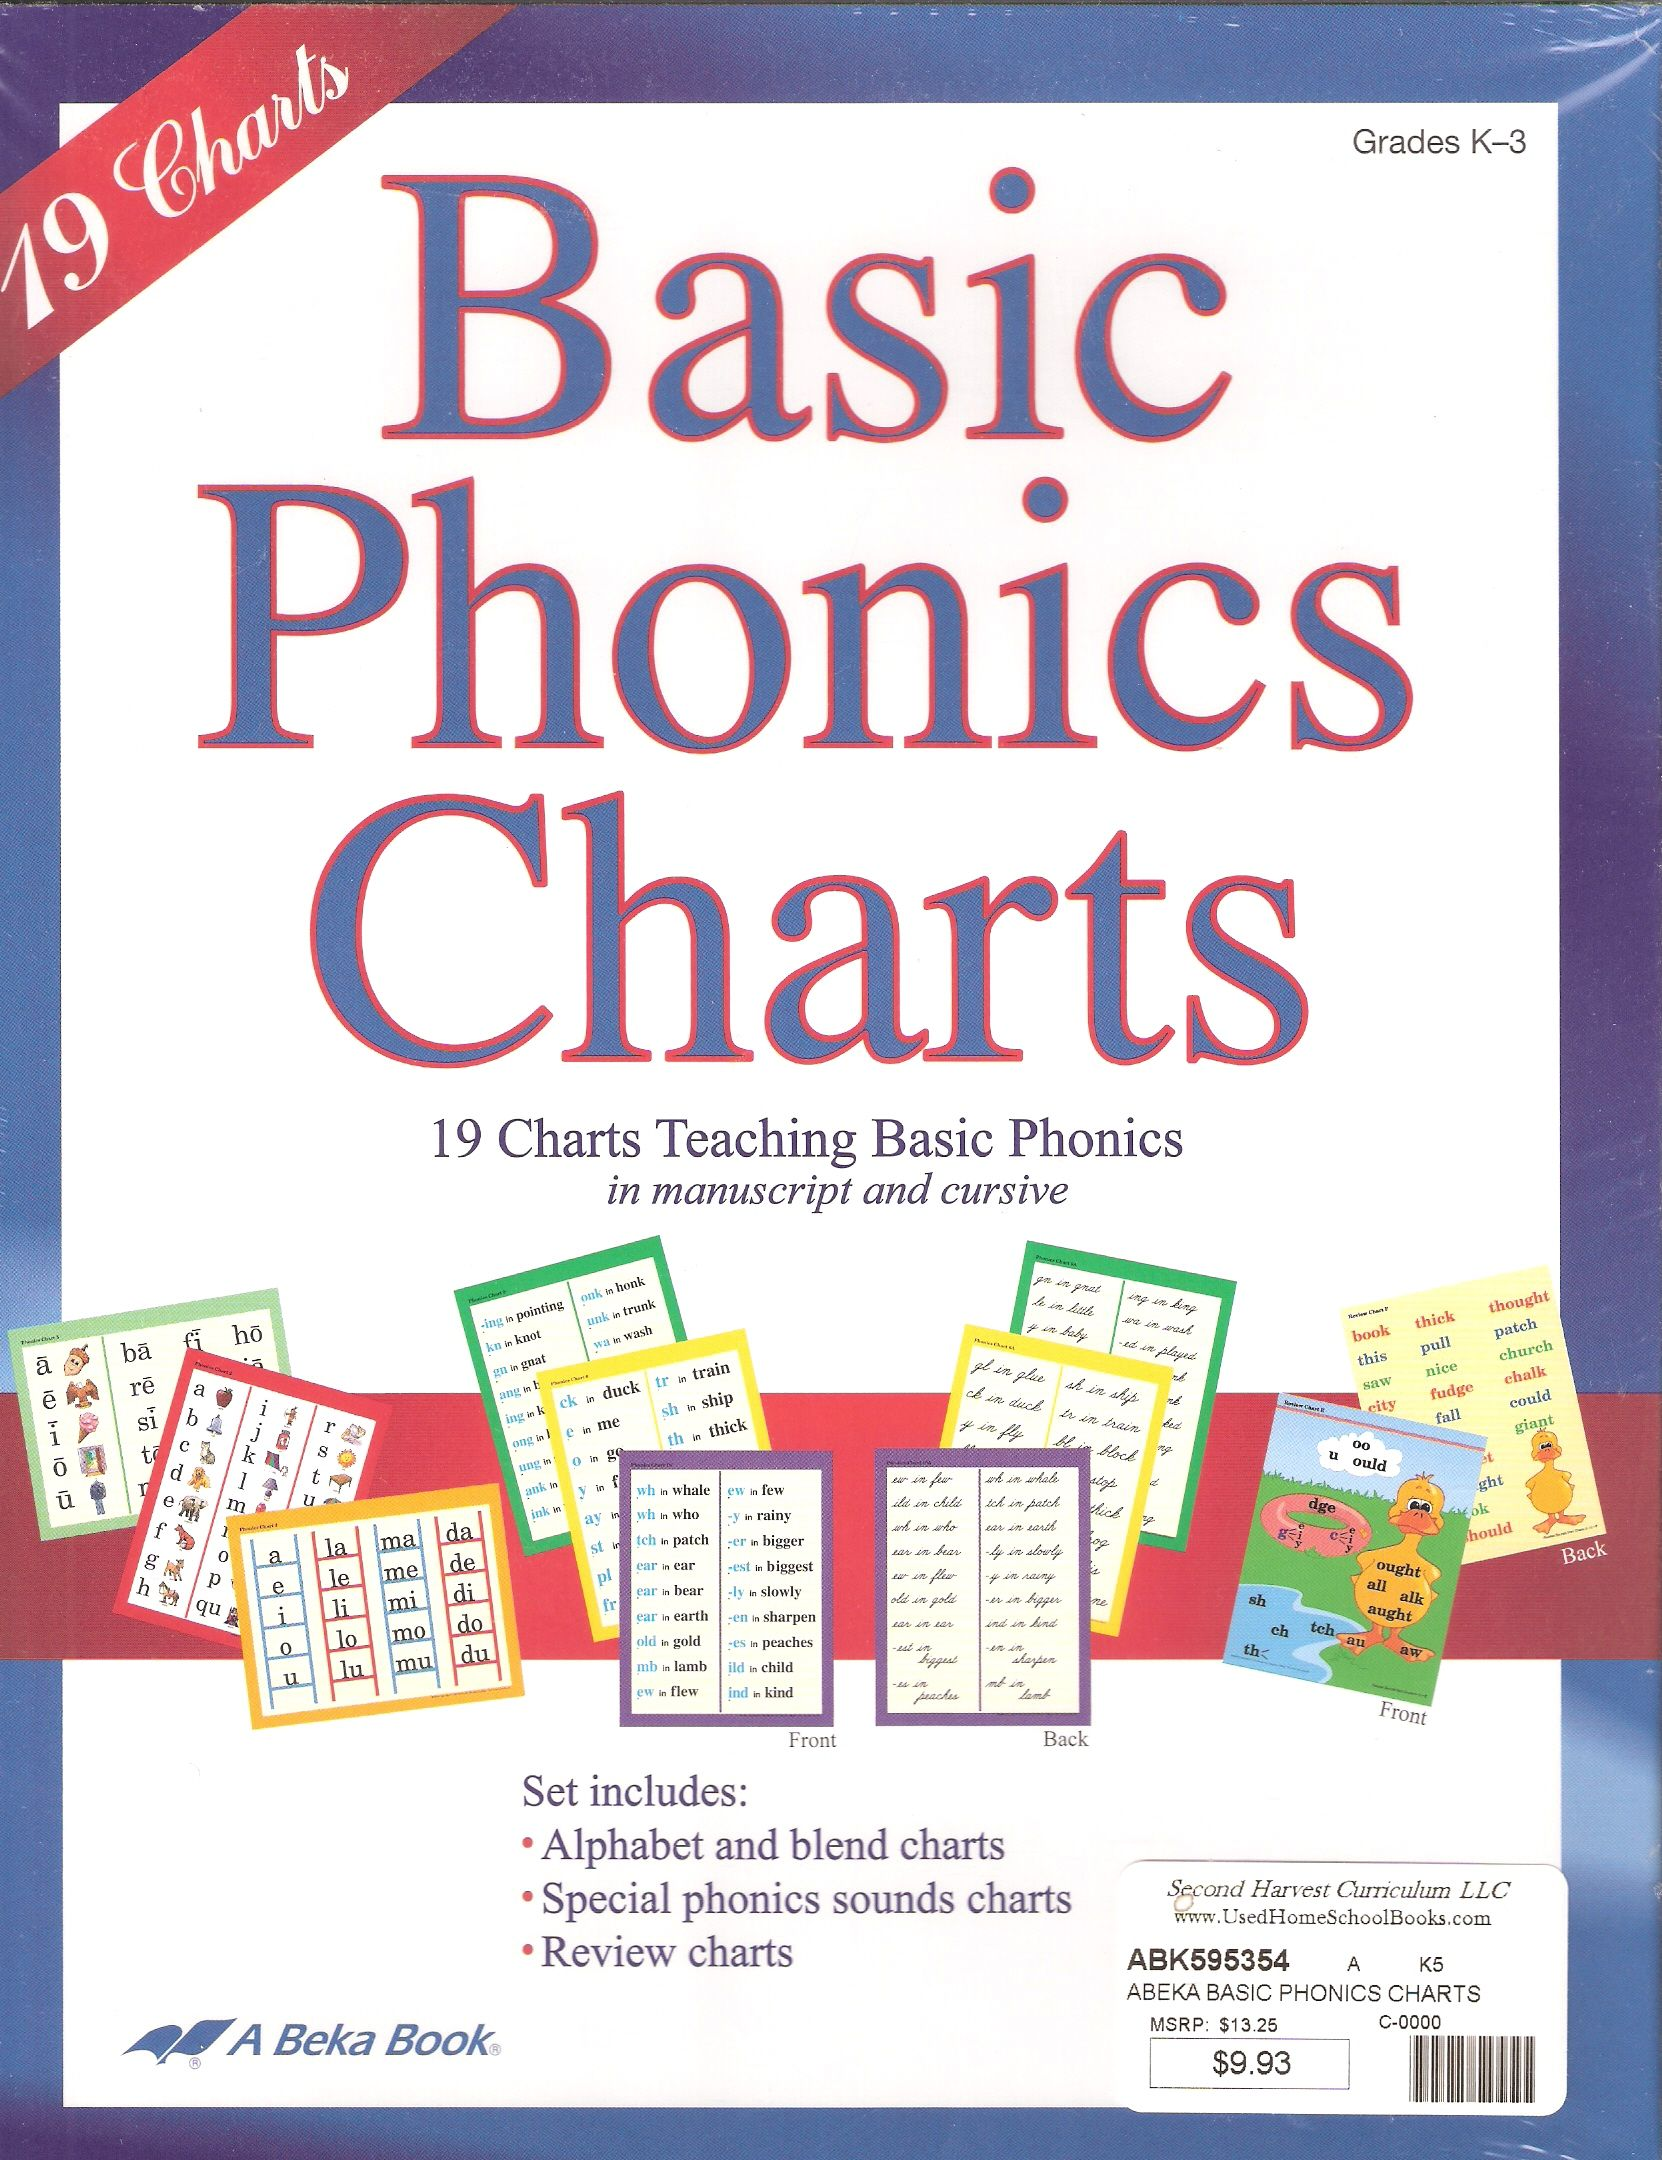 Abeka Basic Phonics Charts Include All Sounds Introduced